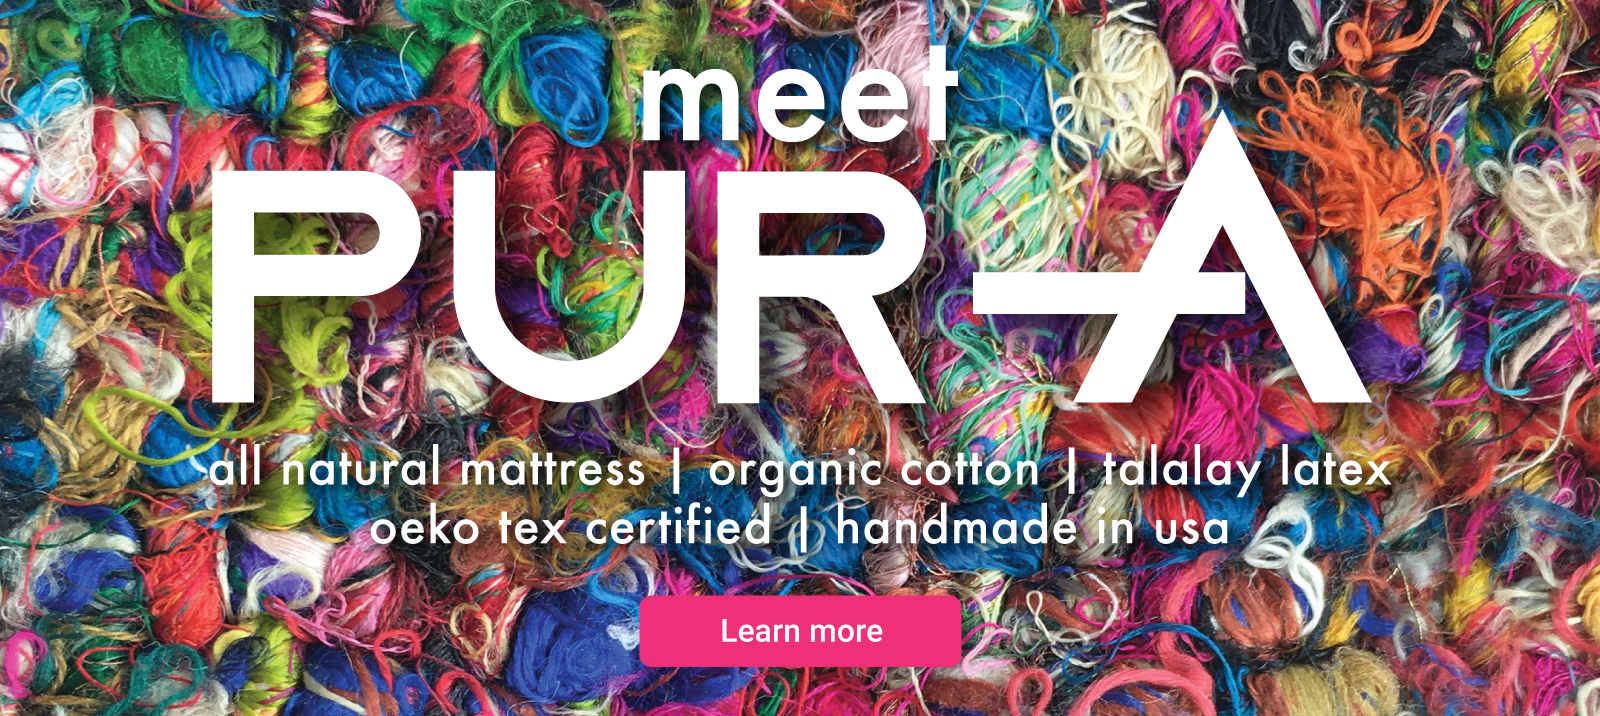 meet PURA all natural mattress, organic cotton, talalay latex, oeko tex certified, handmade in usa learn more